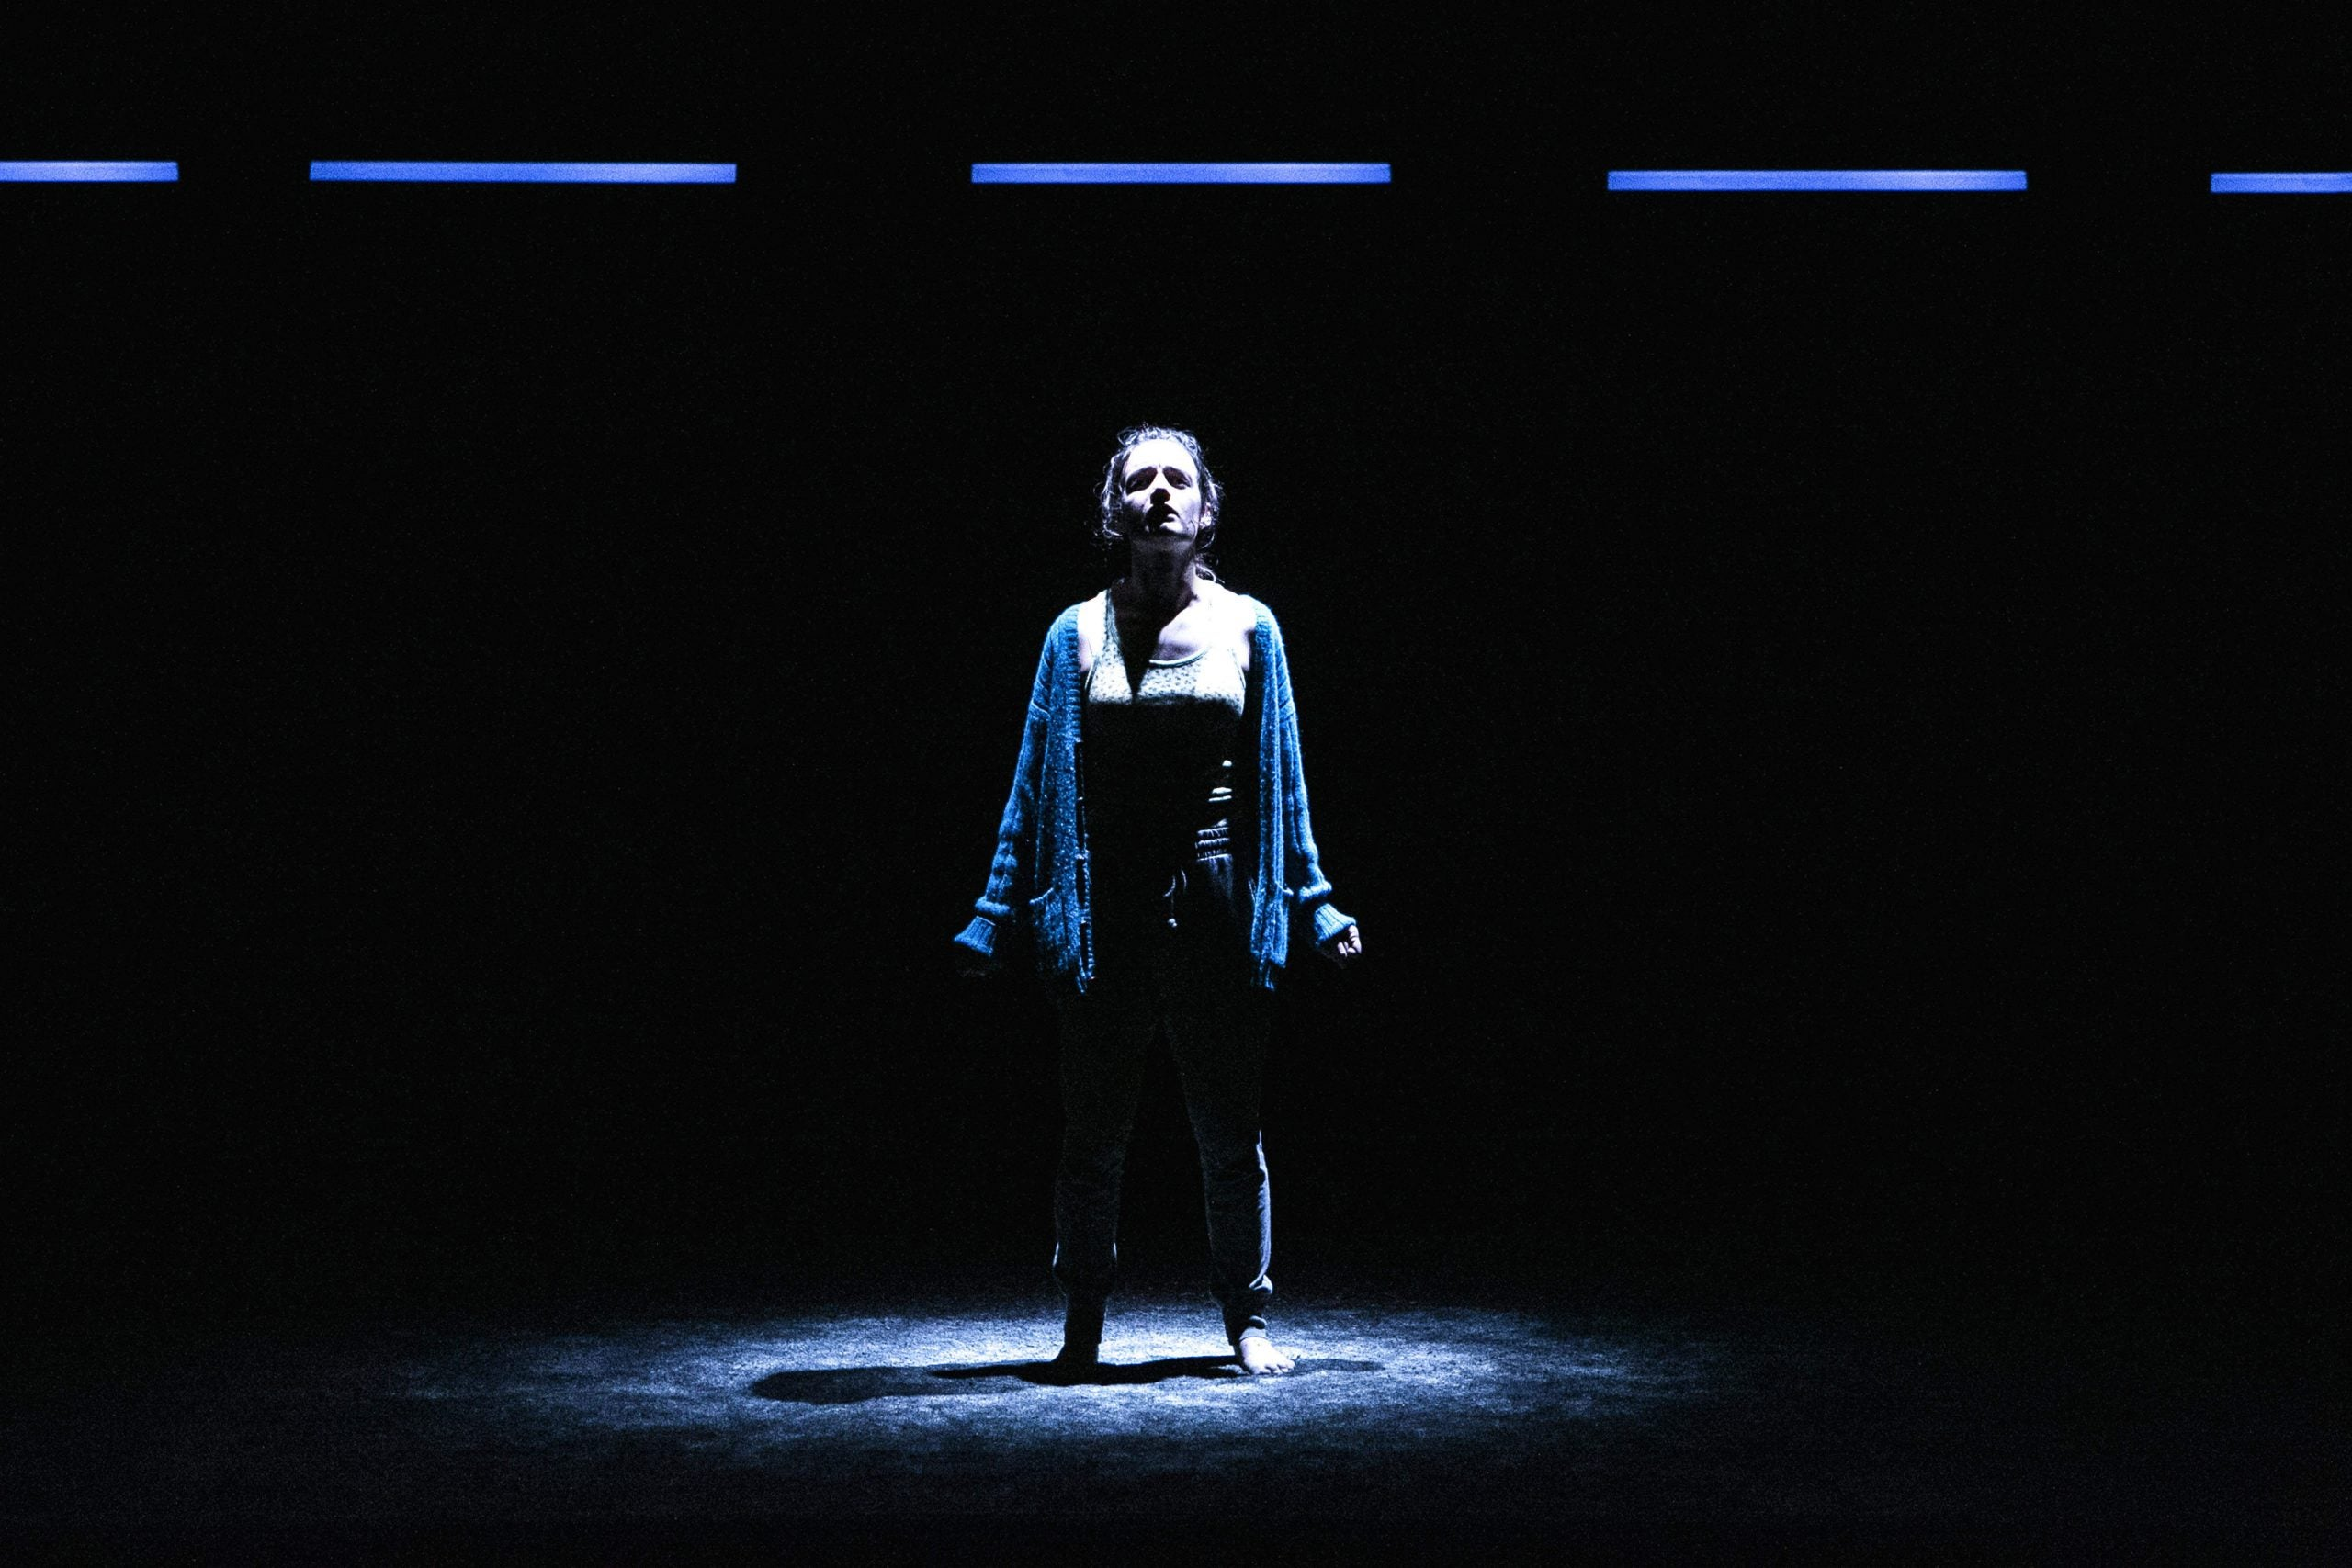 On stage, A Girl Is a Half-Formed Thing becomes fully formed